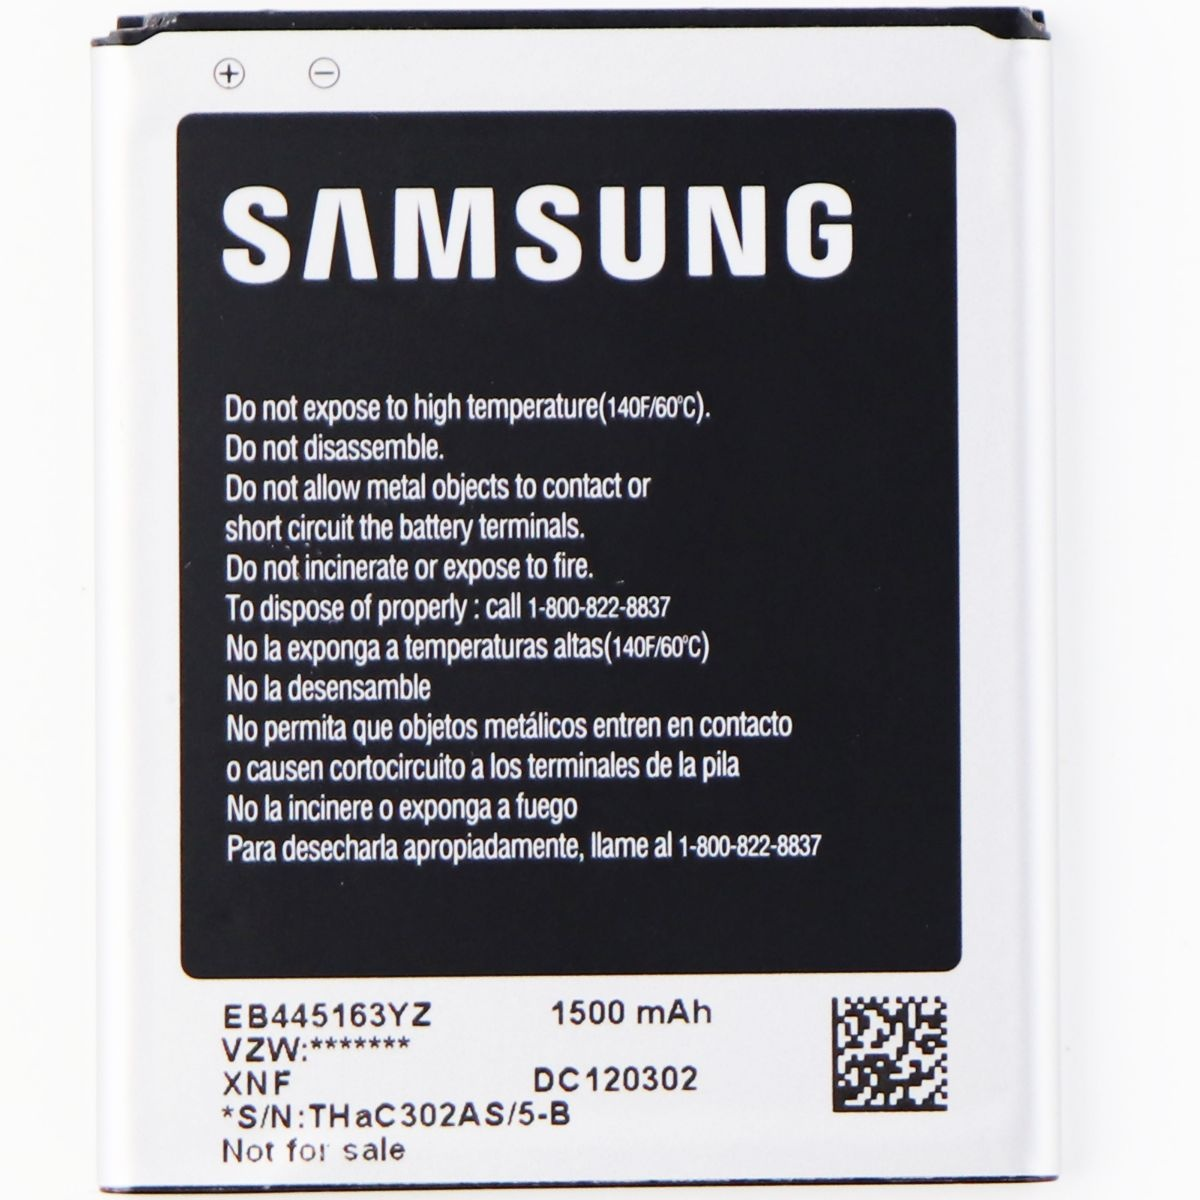 SAMSUNG Replacement Battery EB445163YZ - 1500 mAh